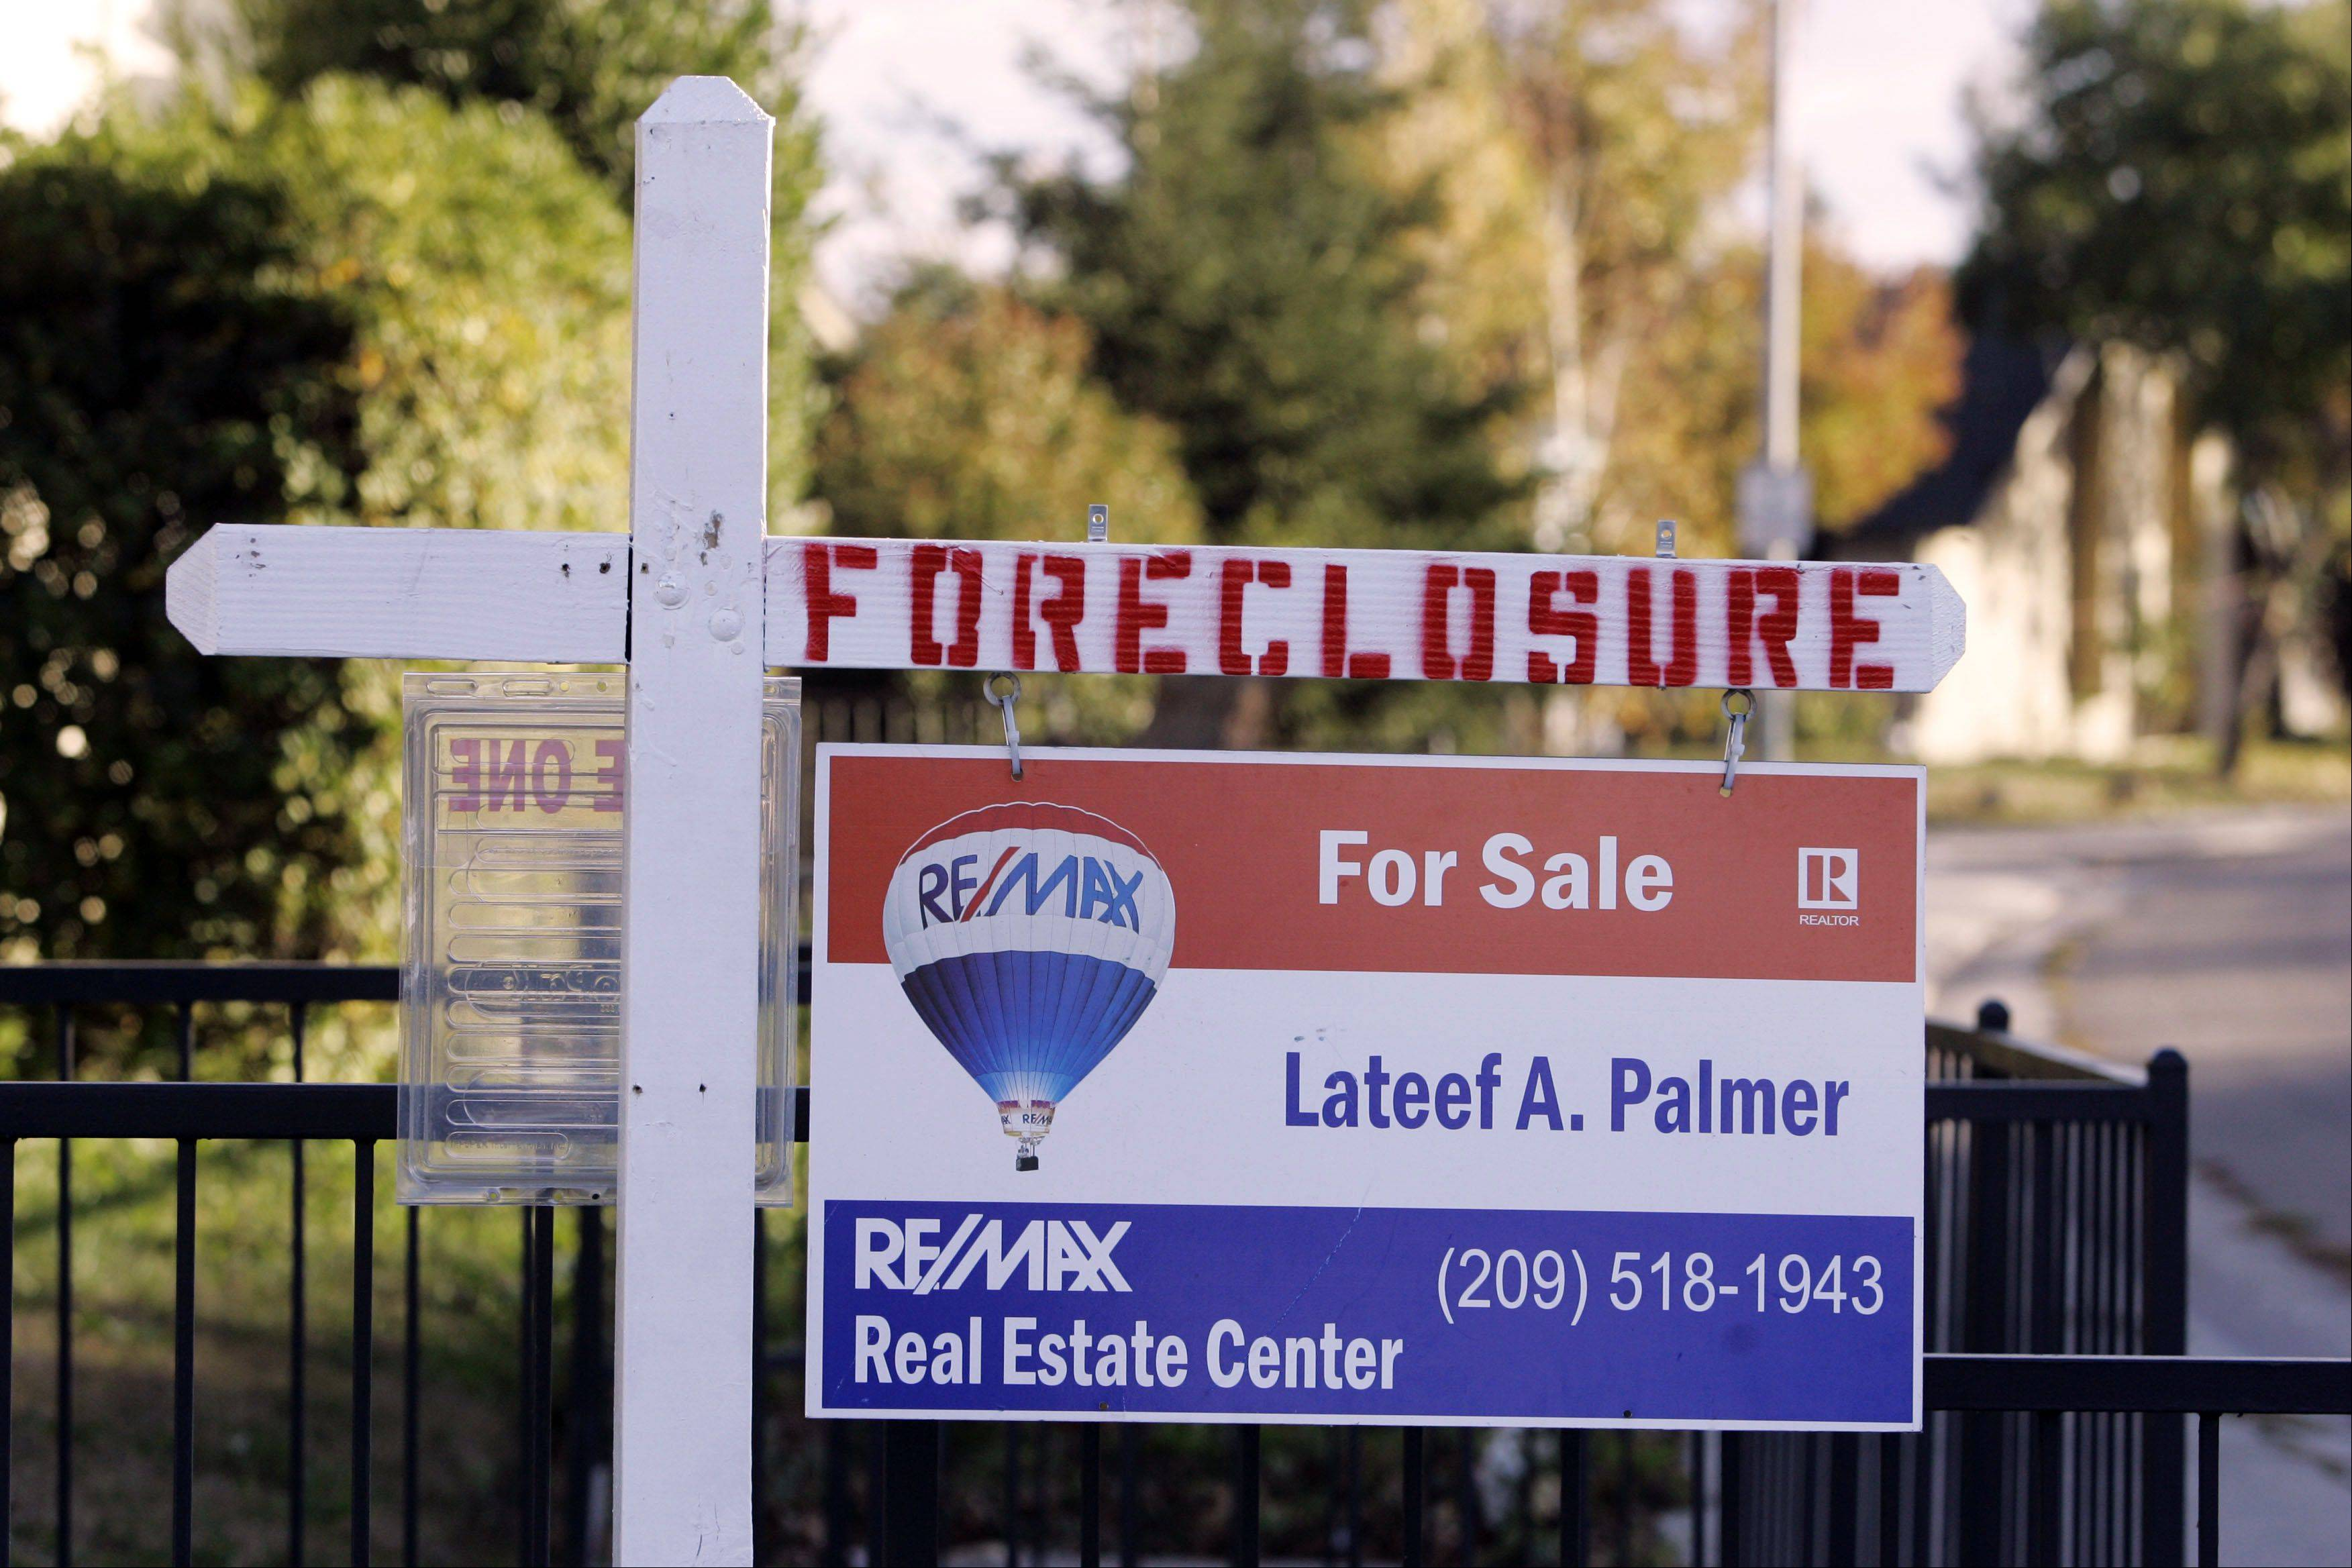 A foreclosure sign is seen atop a sale sign for a house in Stockton, Calif., Saturday, Dec. 1, 2007. Home foreclosures soared to an all-time high in the final quarter of last year and are likely to keep on rising, underscoring the suffering of distressed homeowners and the growing danger the housing meltdown poses for the economy.